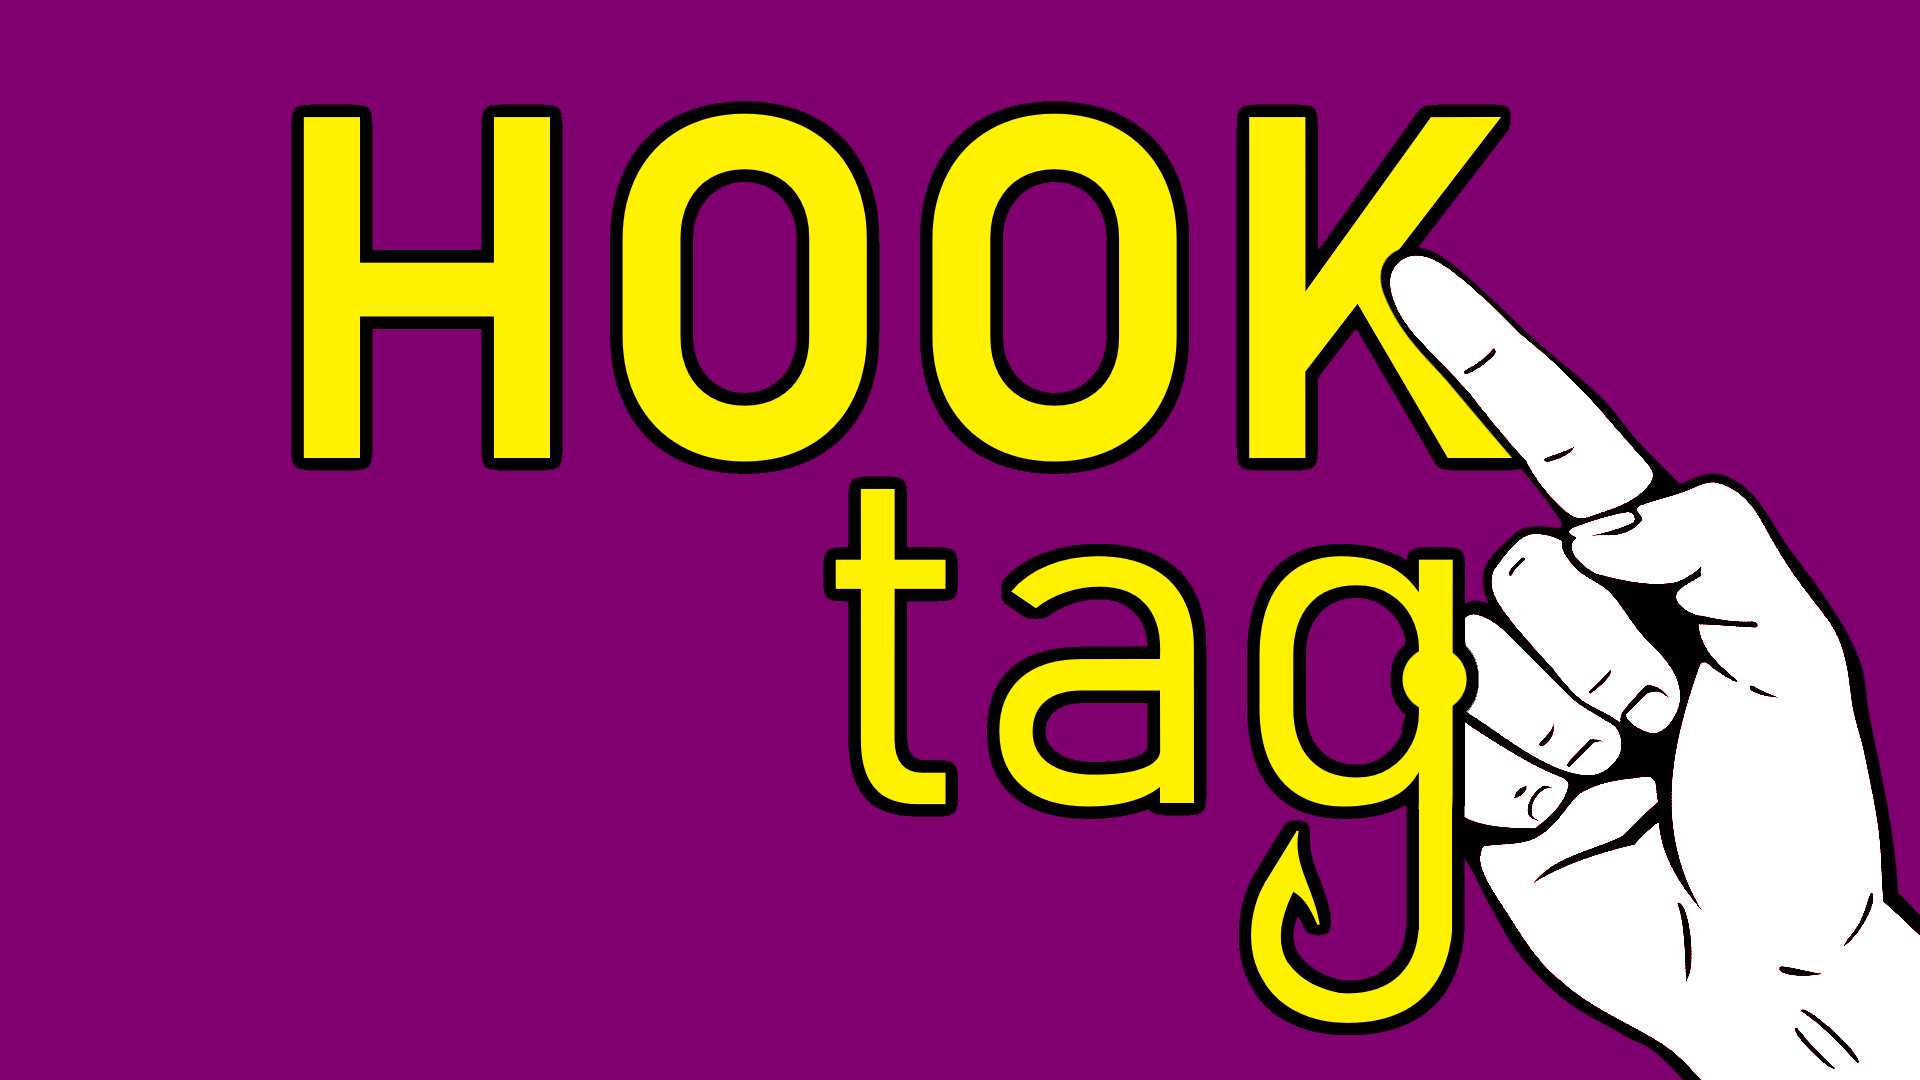 Hook Tag.png